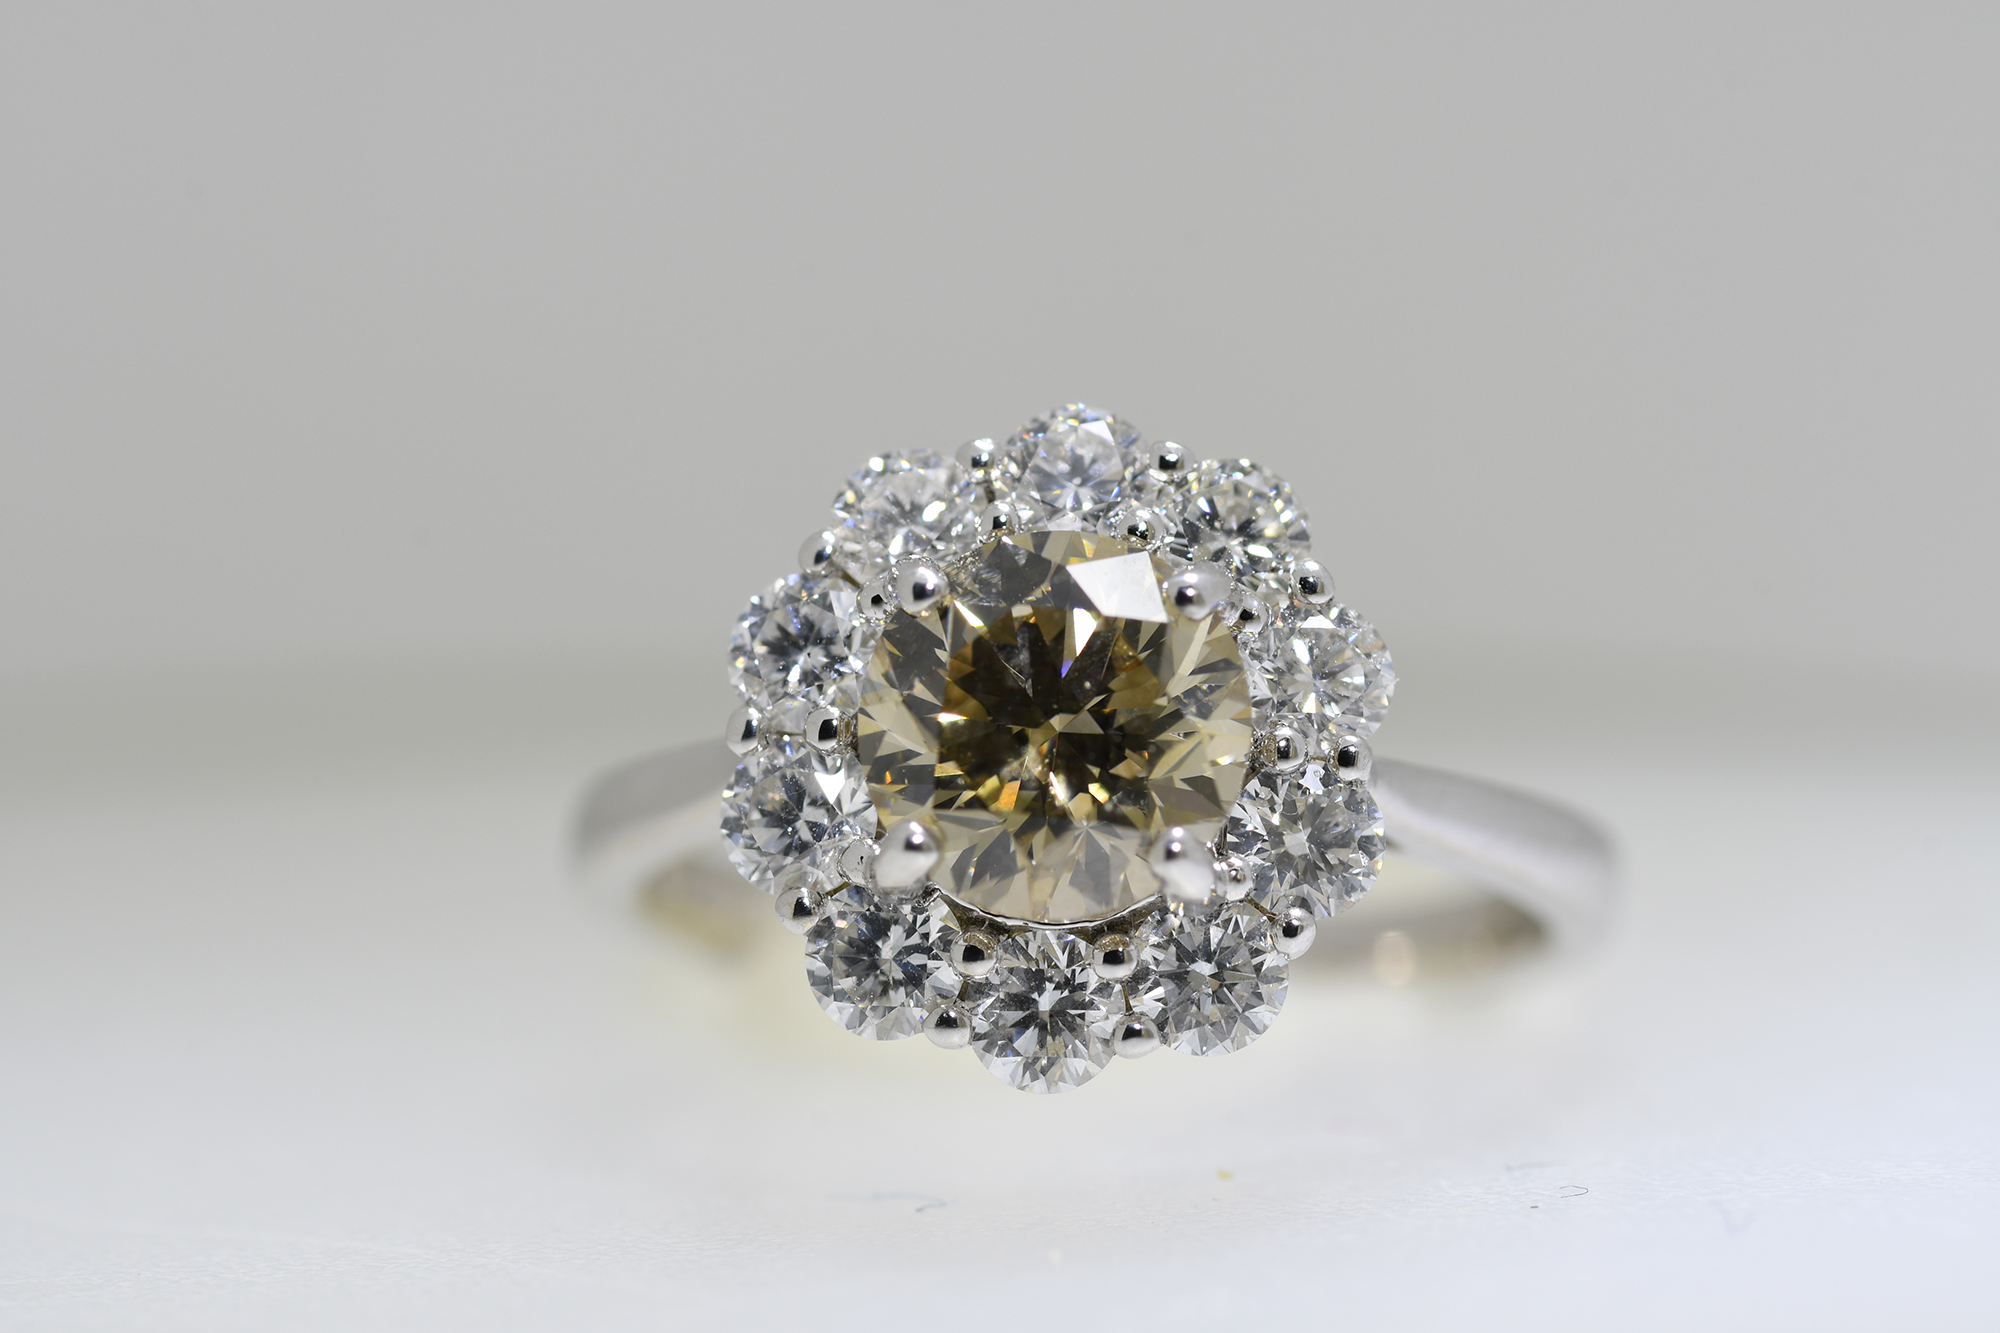 Cognac & White Diamond Ring - Image 4 of 4